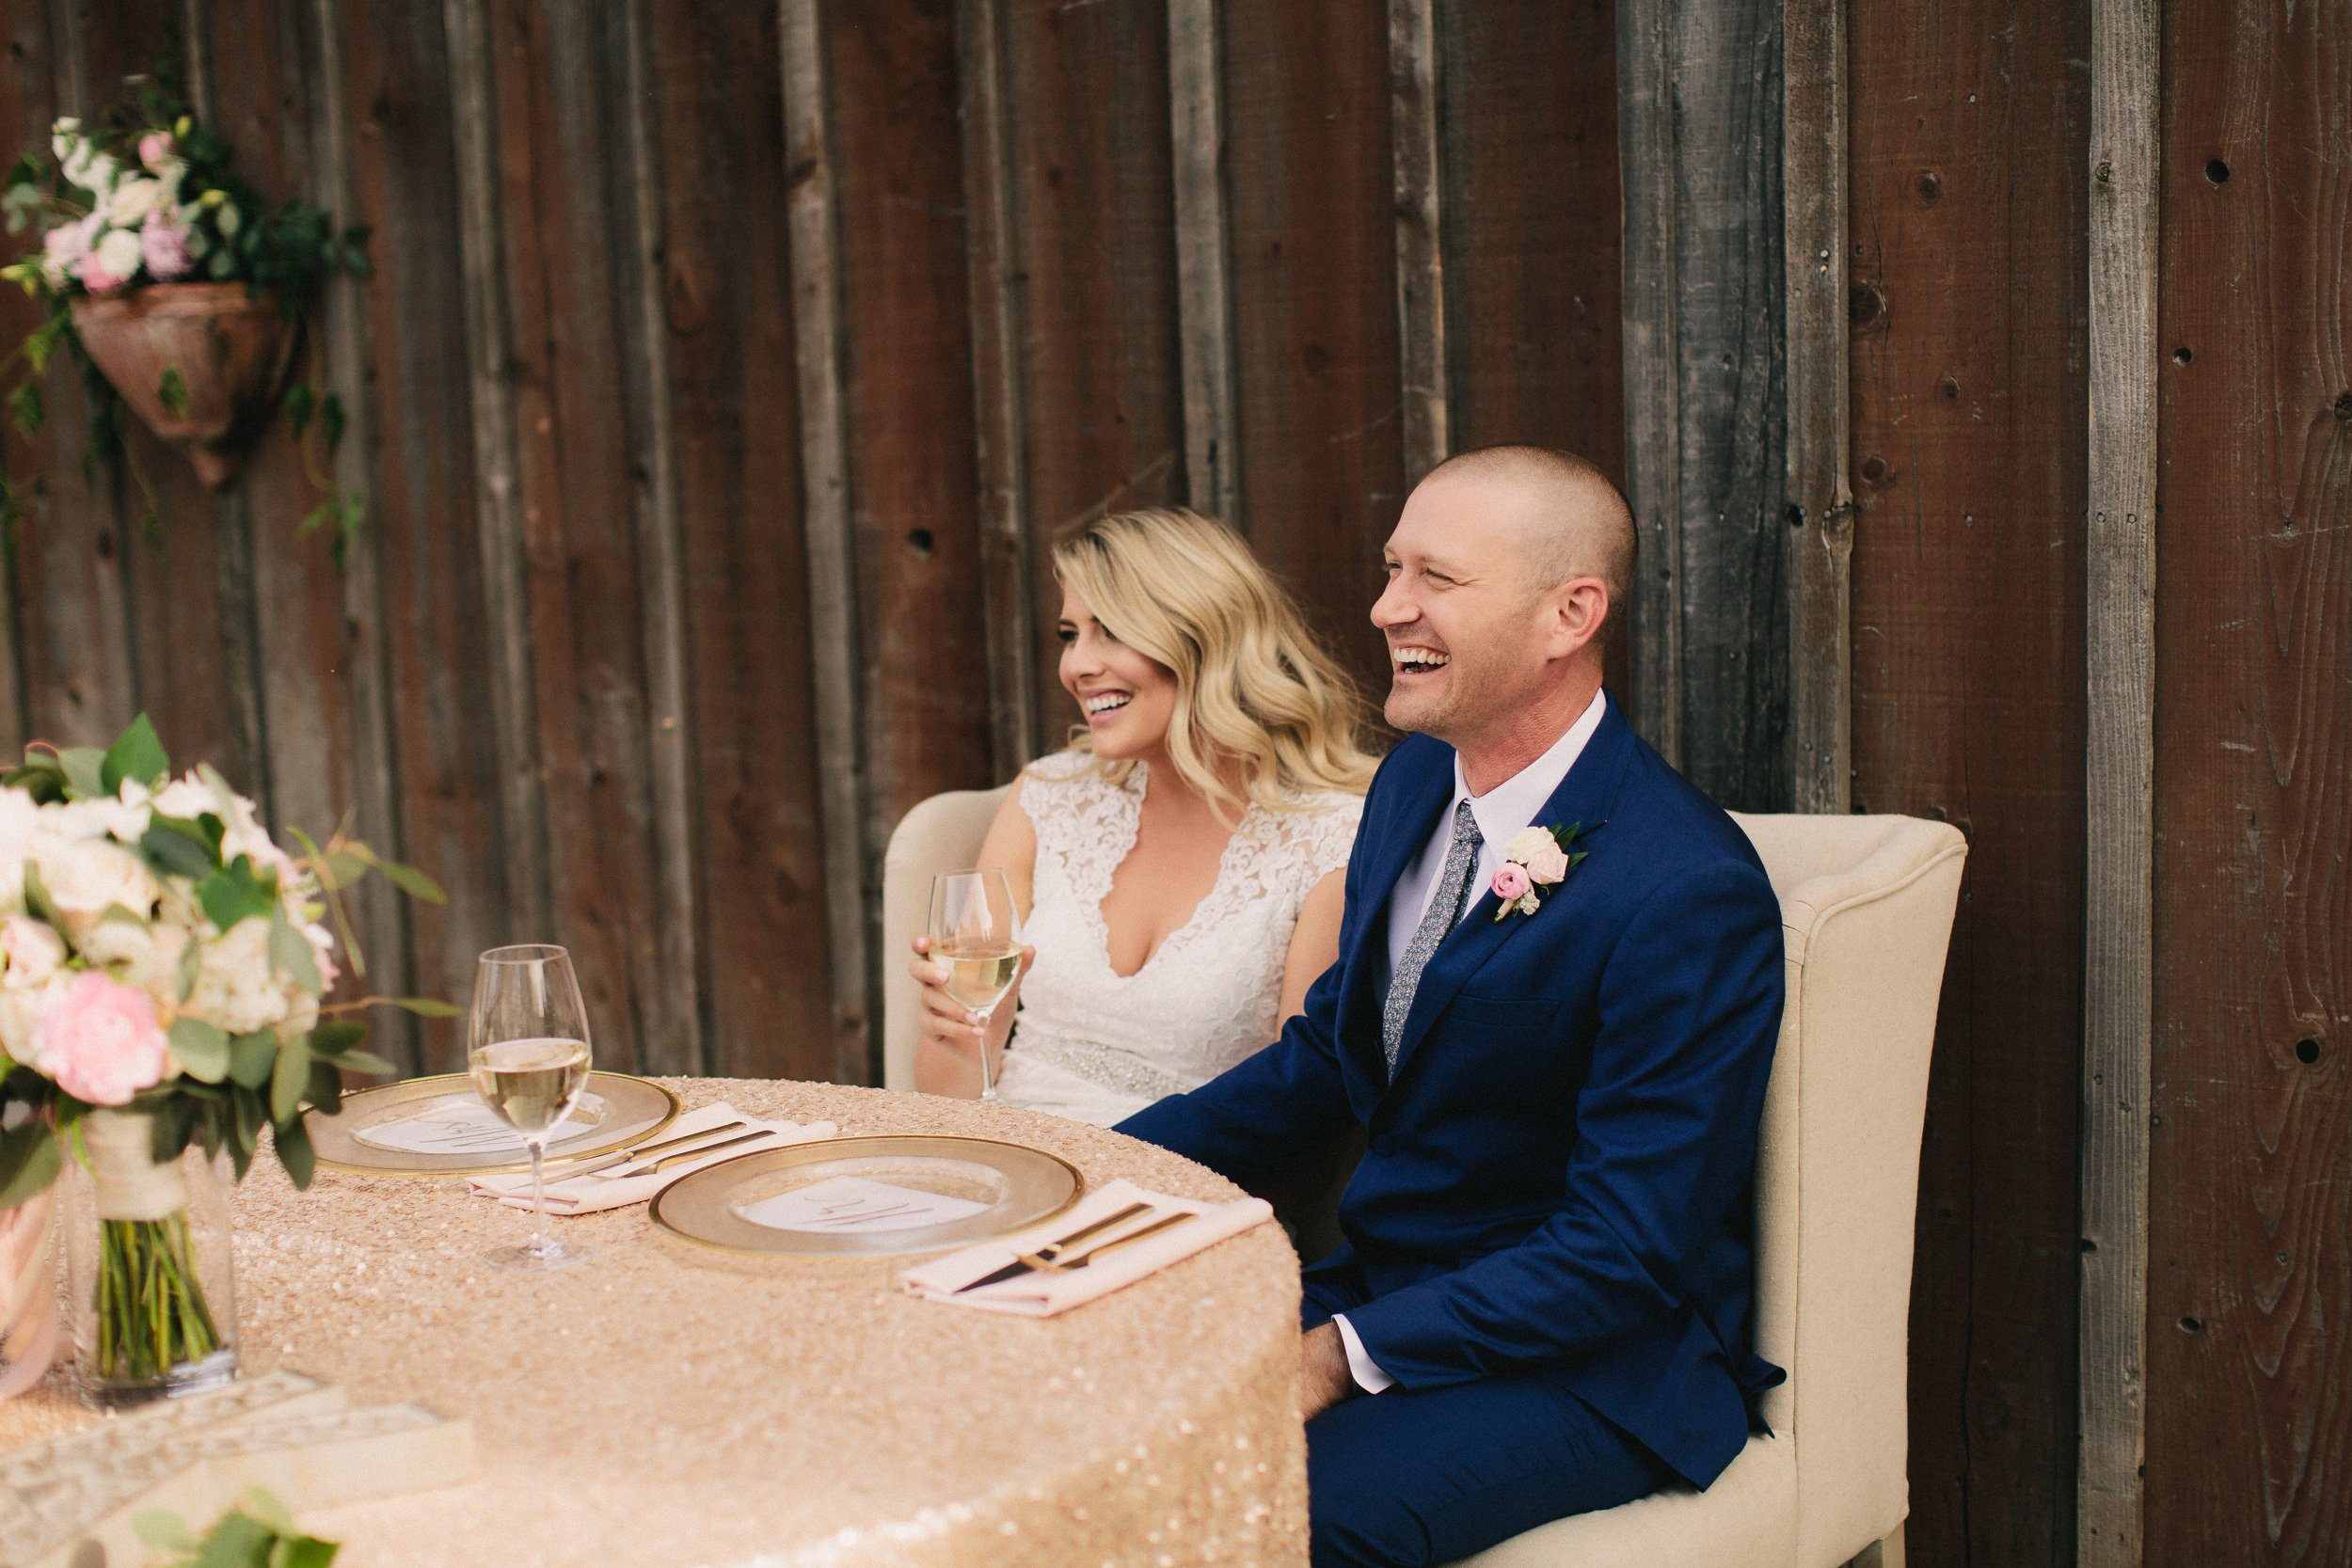 CaliforniaWedding|LindenCloverPhotography_0082.jpg